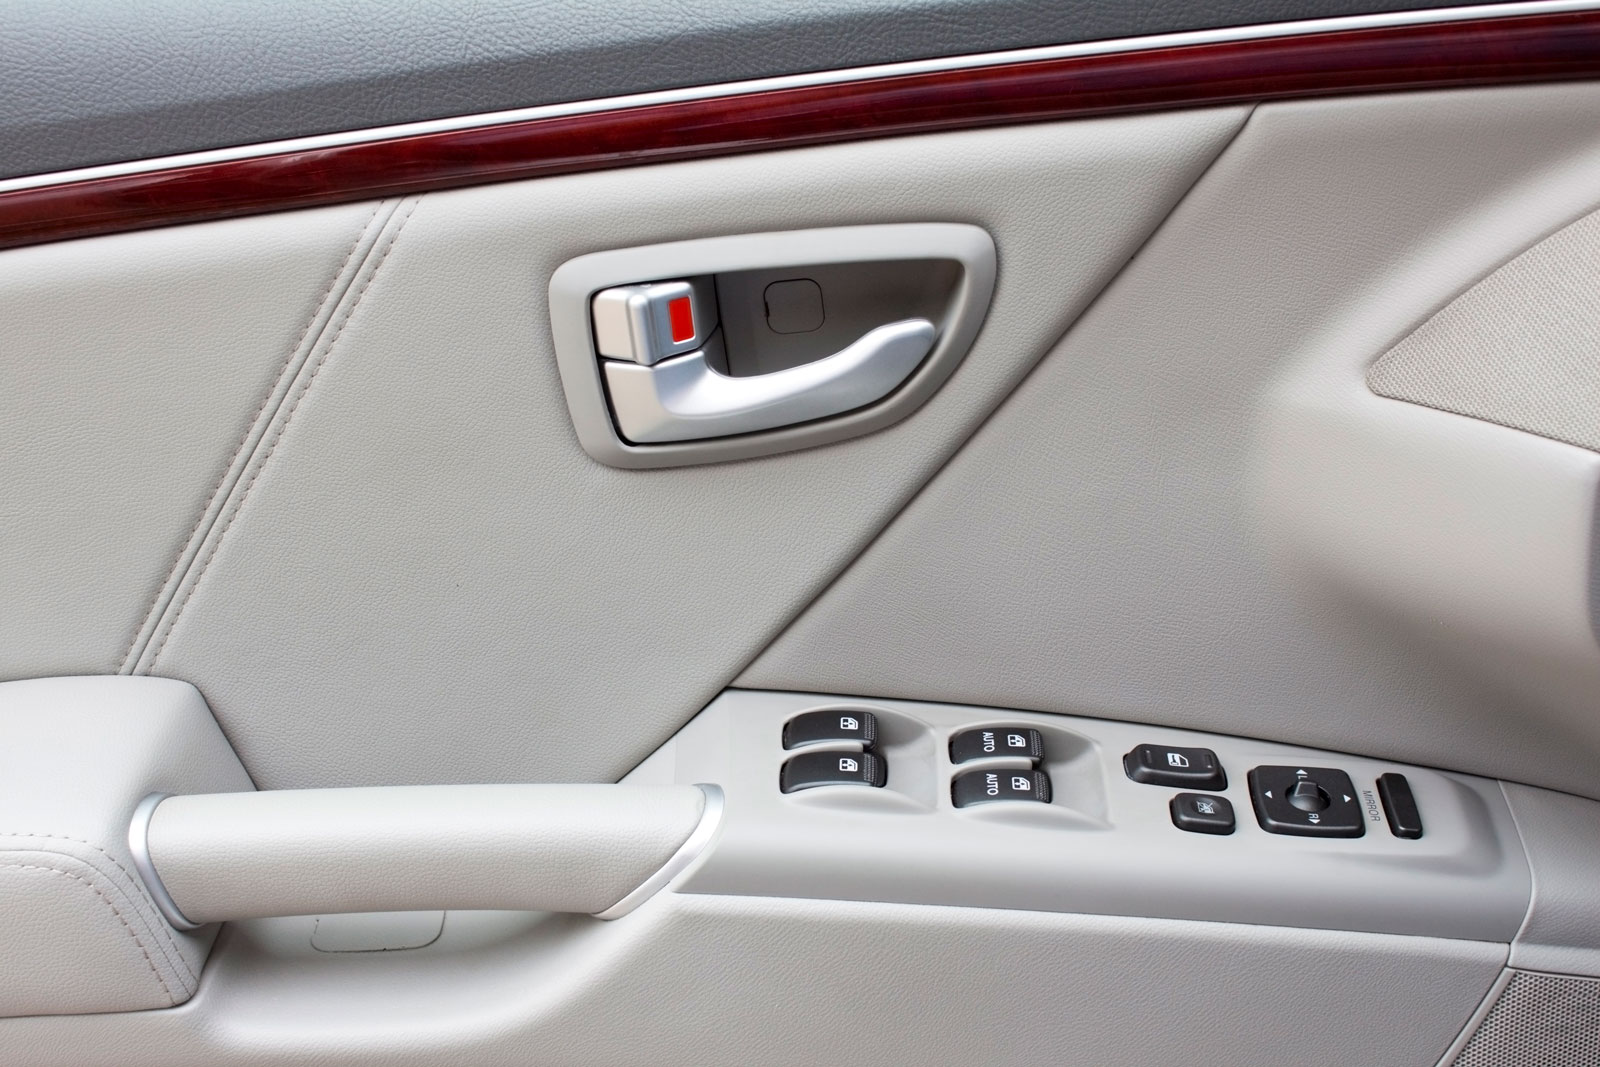 image of buttons on car door